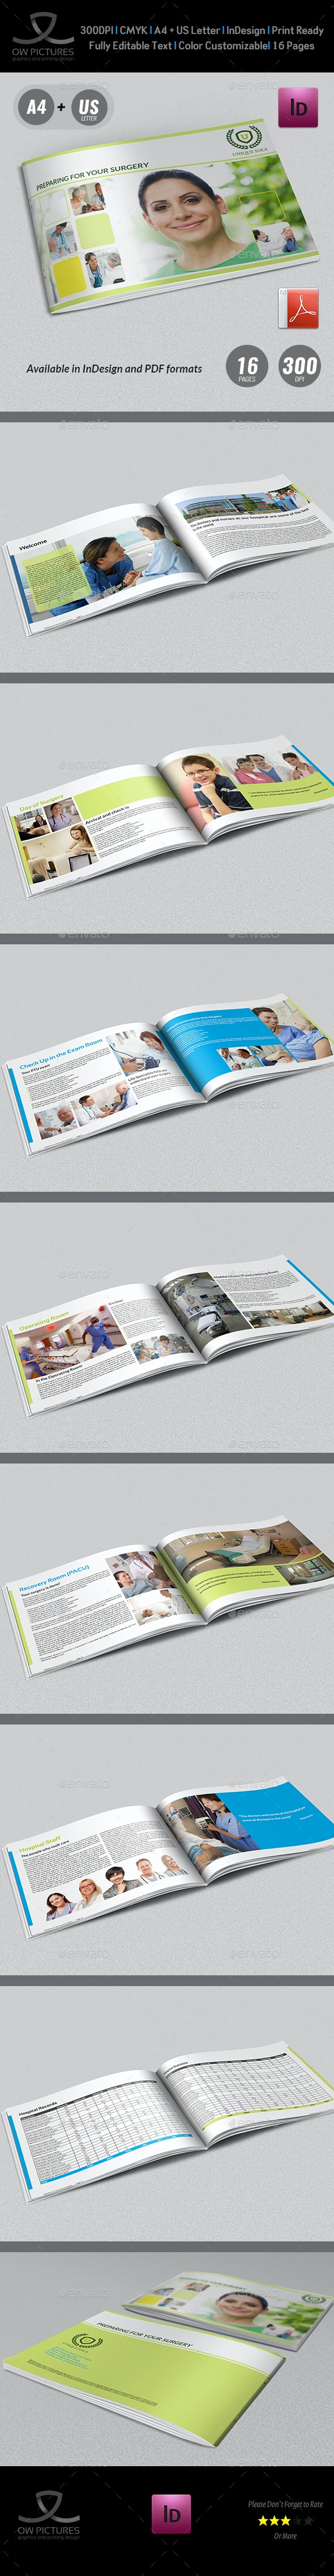 Preparing for Surgery Brochure Template - 16 Pages - Informational Brochures